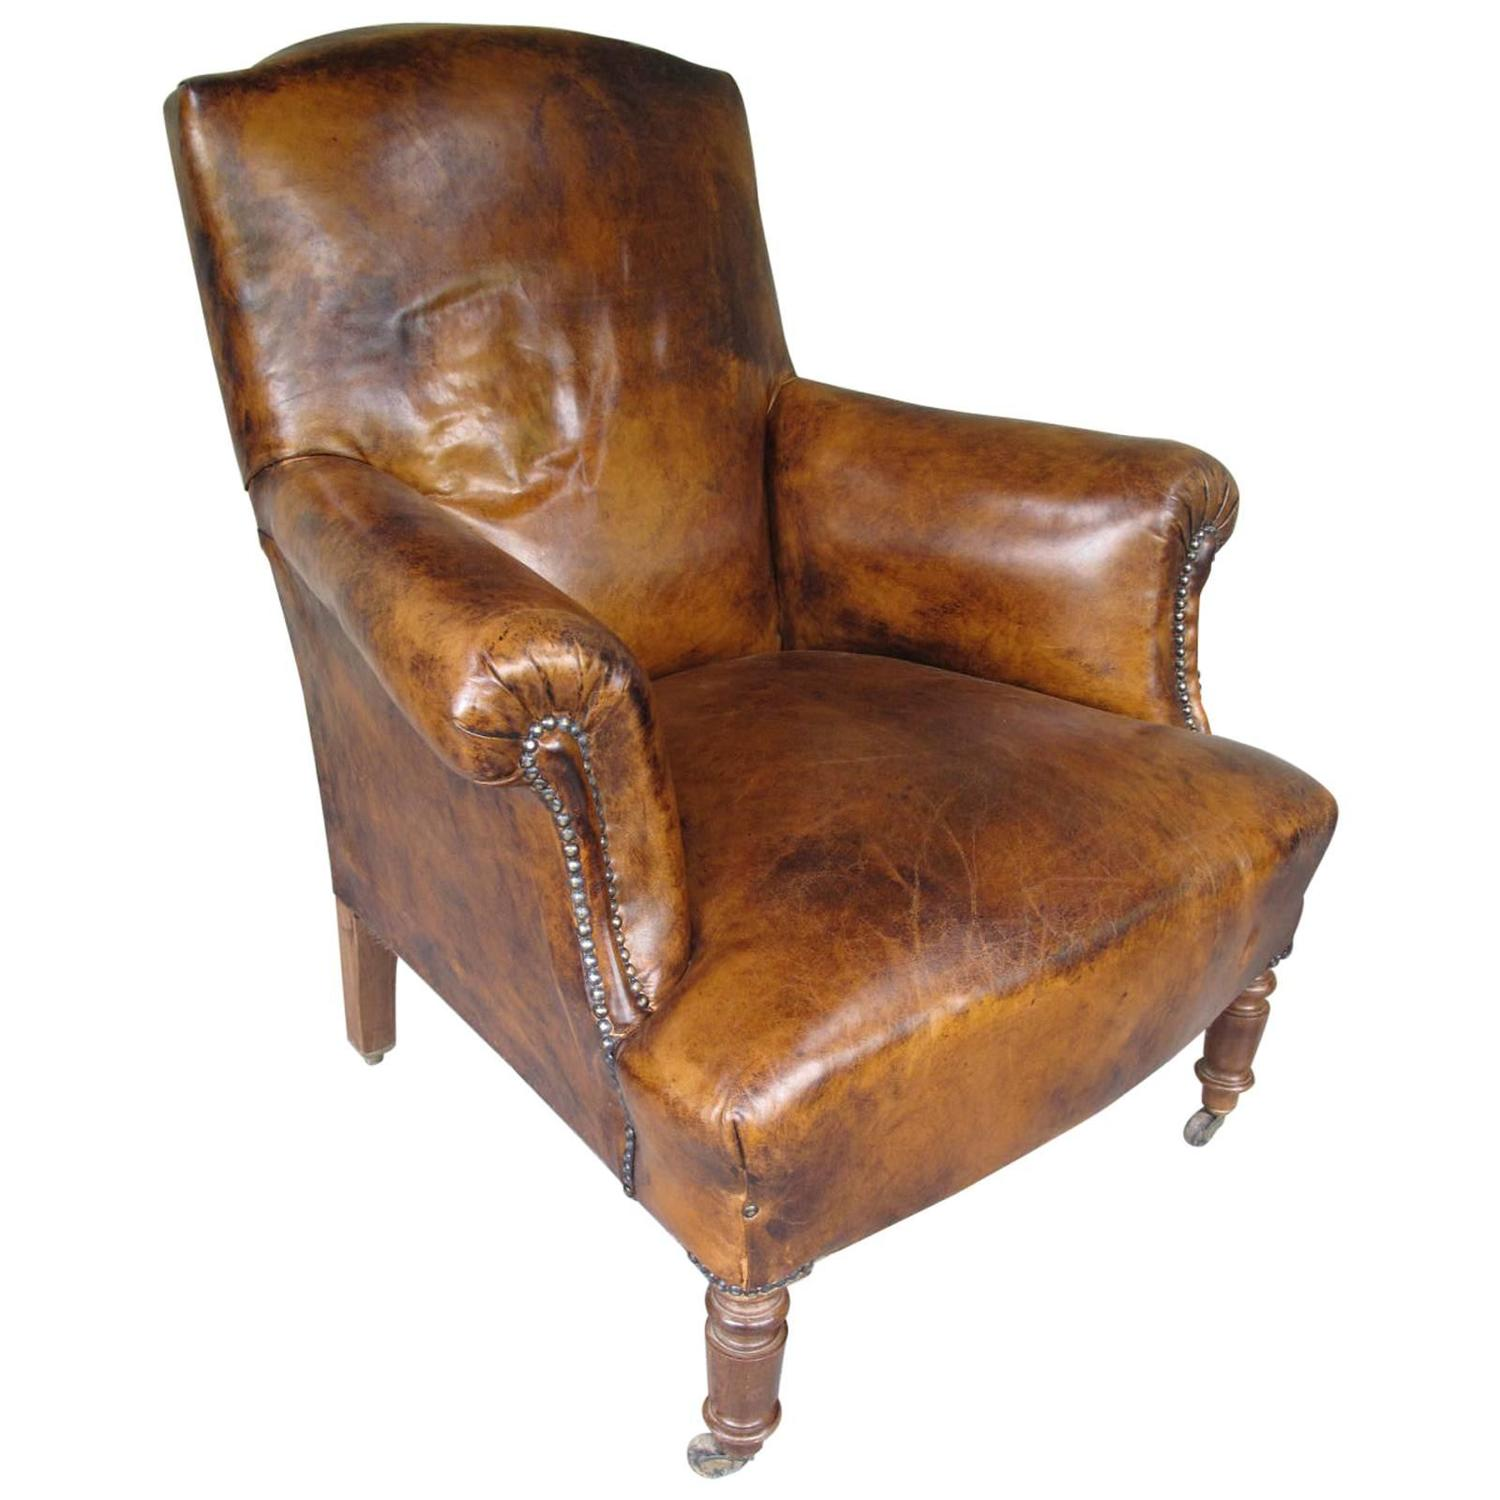 Antique French Armchair In Leather At 1stdibs